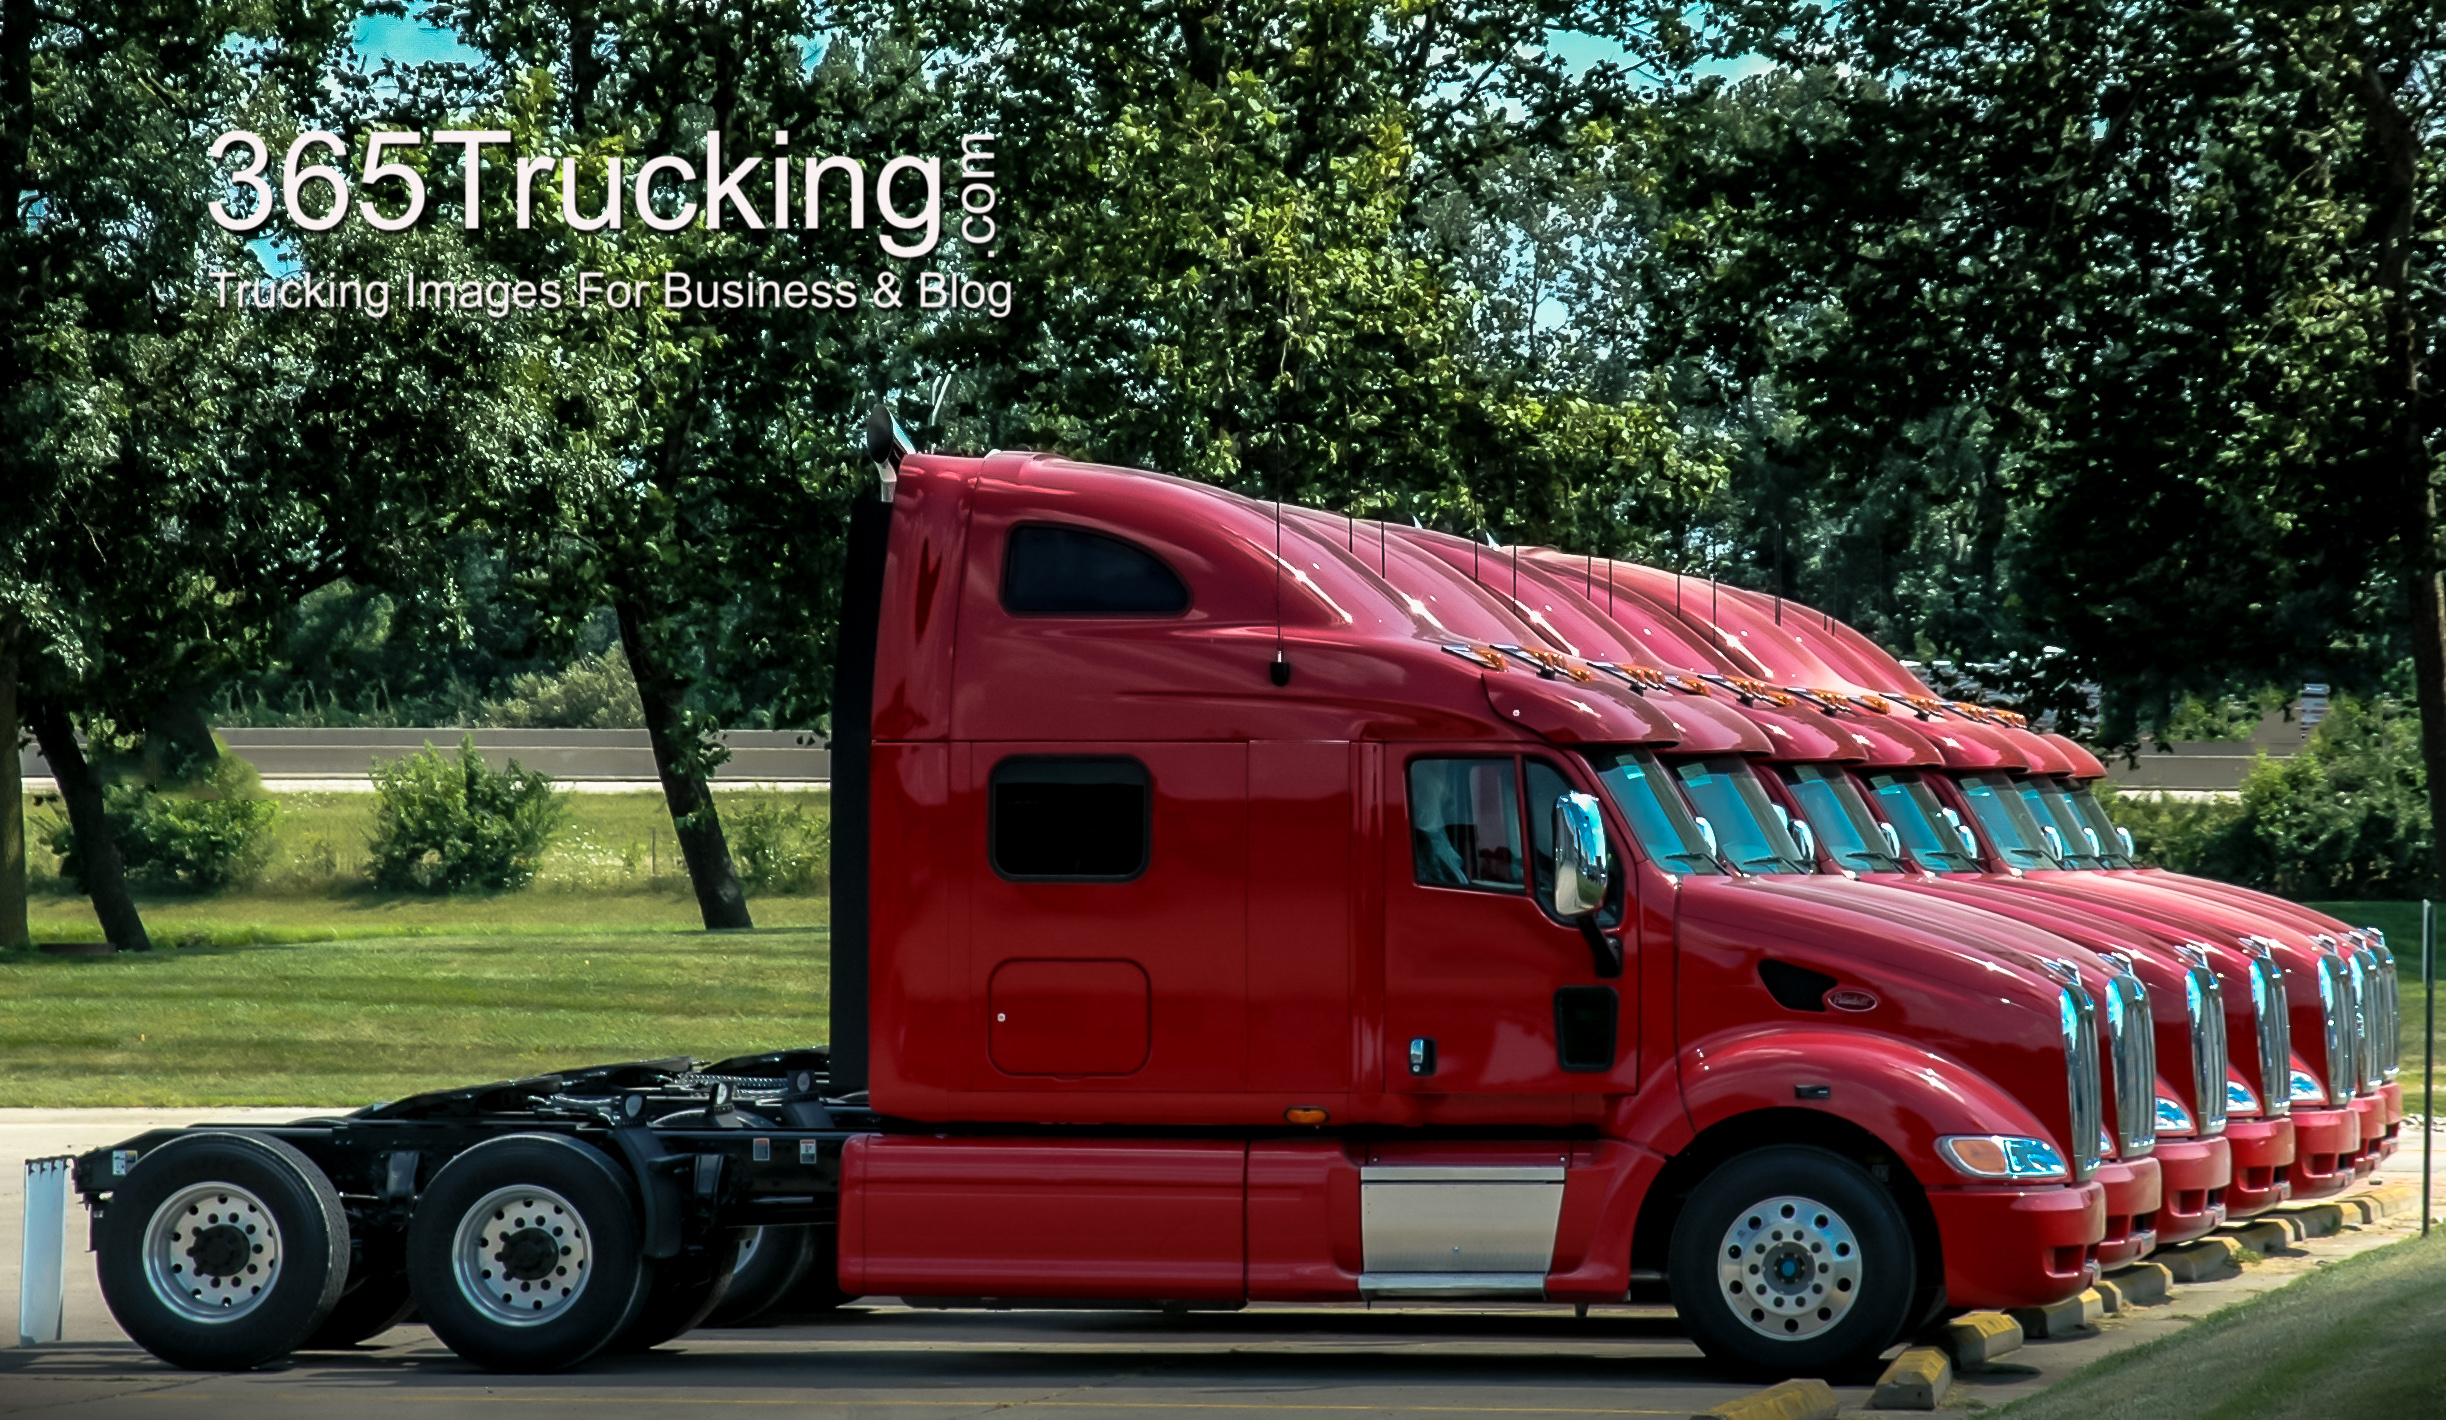 a_usxpress_truck_peterbilt_080108_2